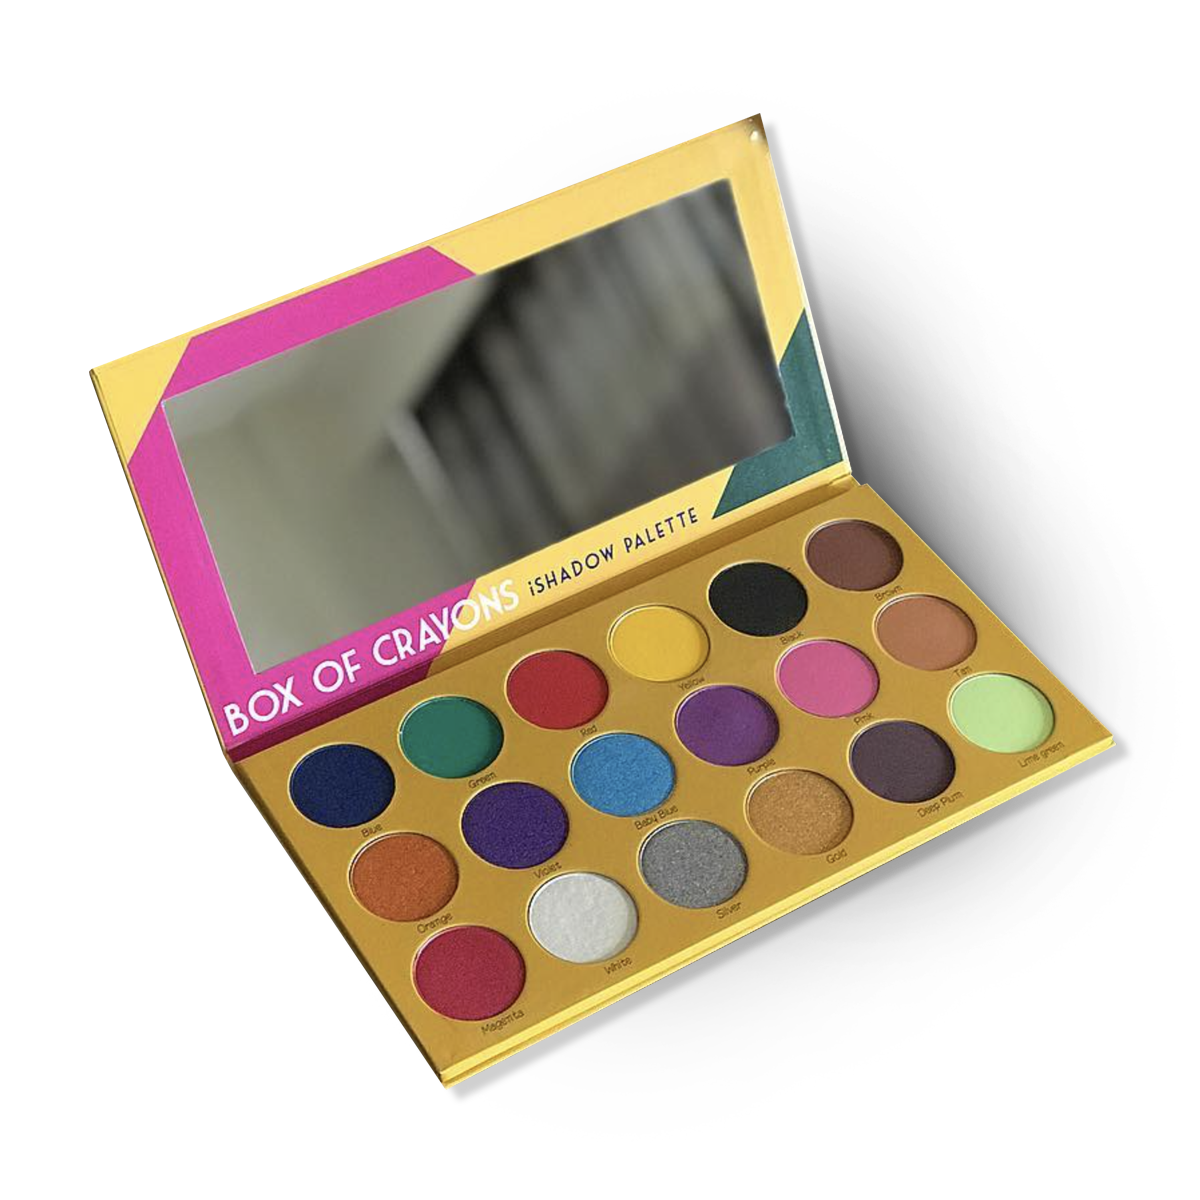 Box Of Crayons Palette Makeup, Face gems, Palette